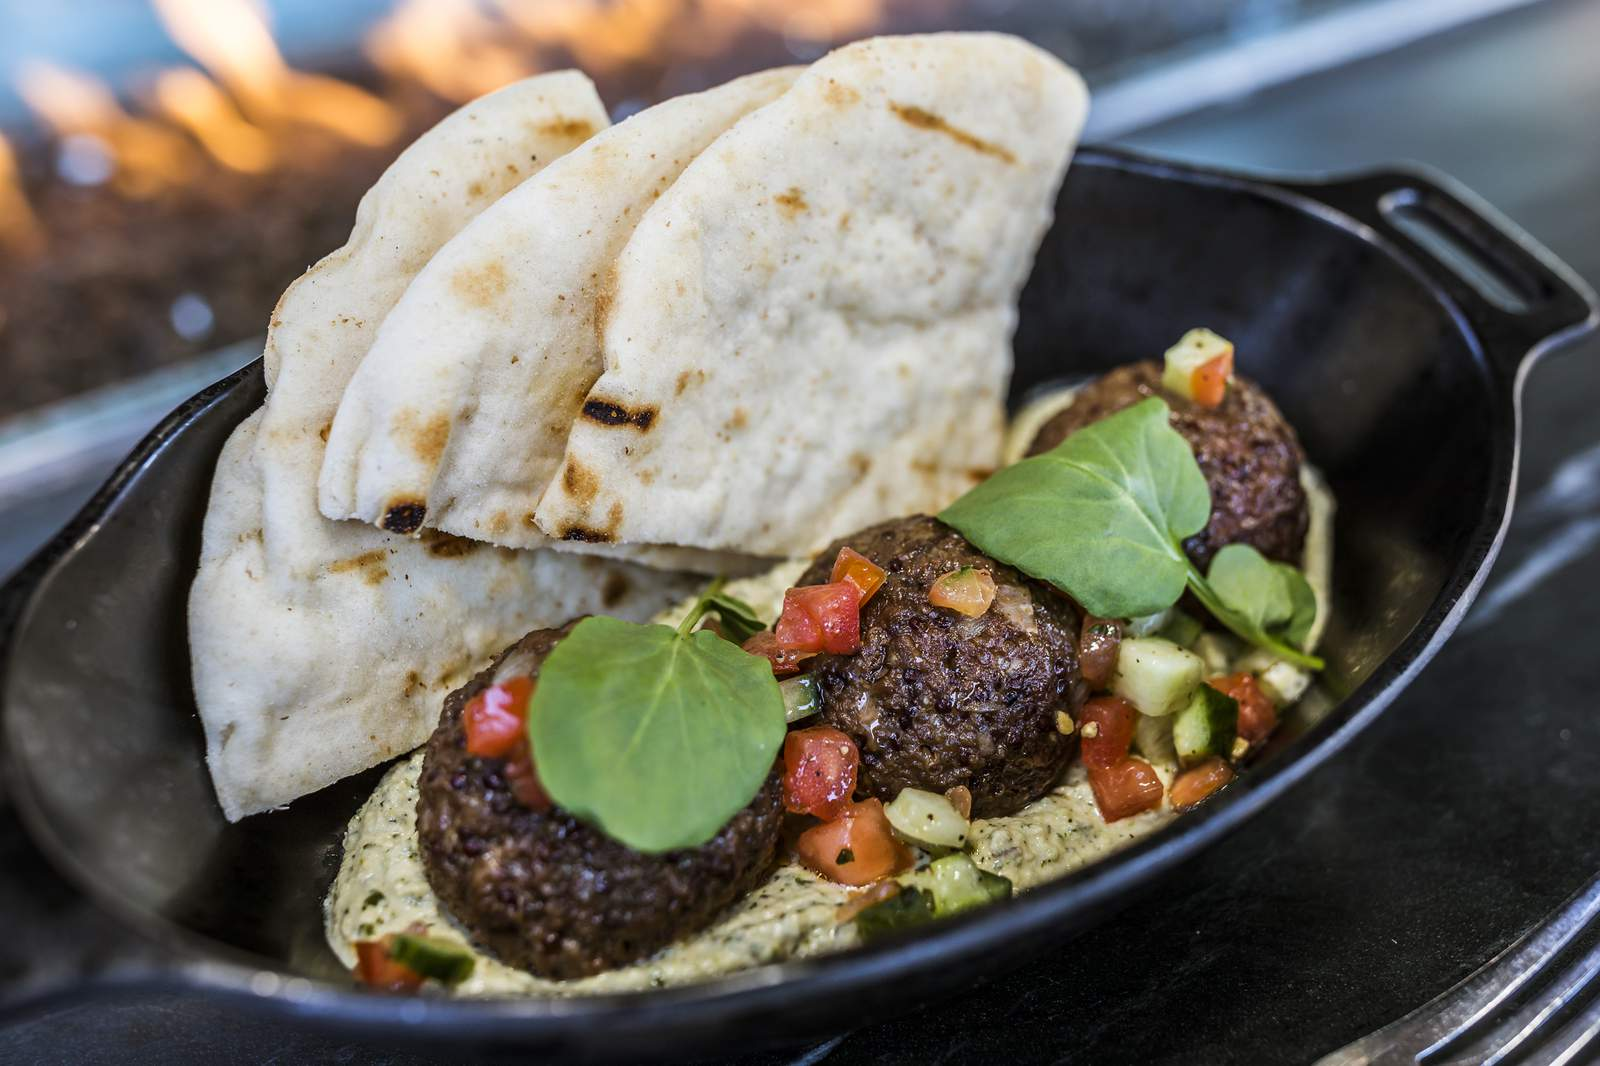 Disney Parks Expand Vegan Food Options And They're